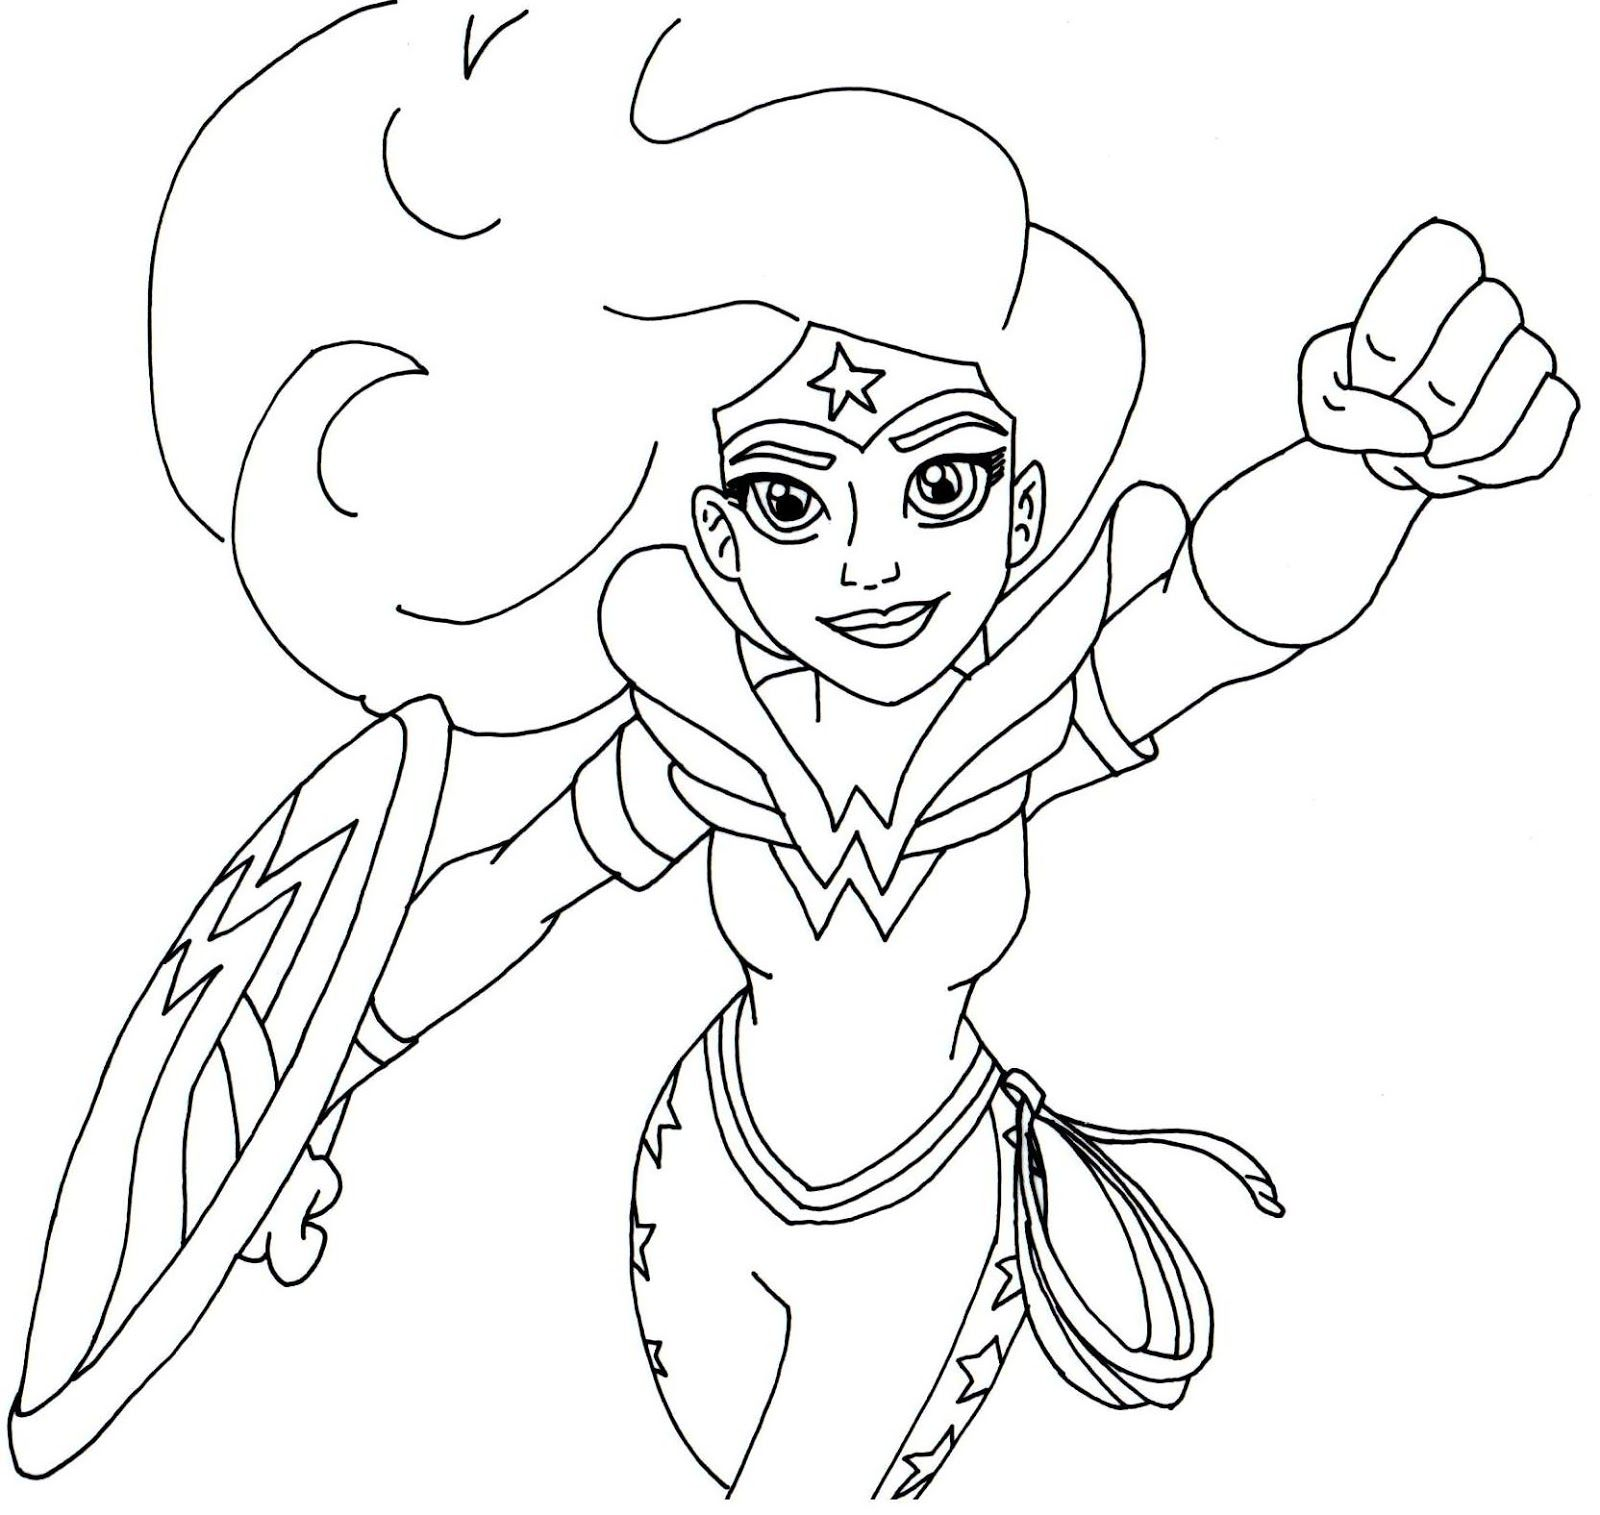 Coloring Pages For Girls: Free Printable Super Hero High Coloring Page For Wonder